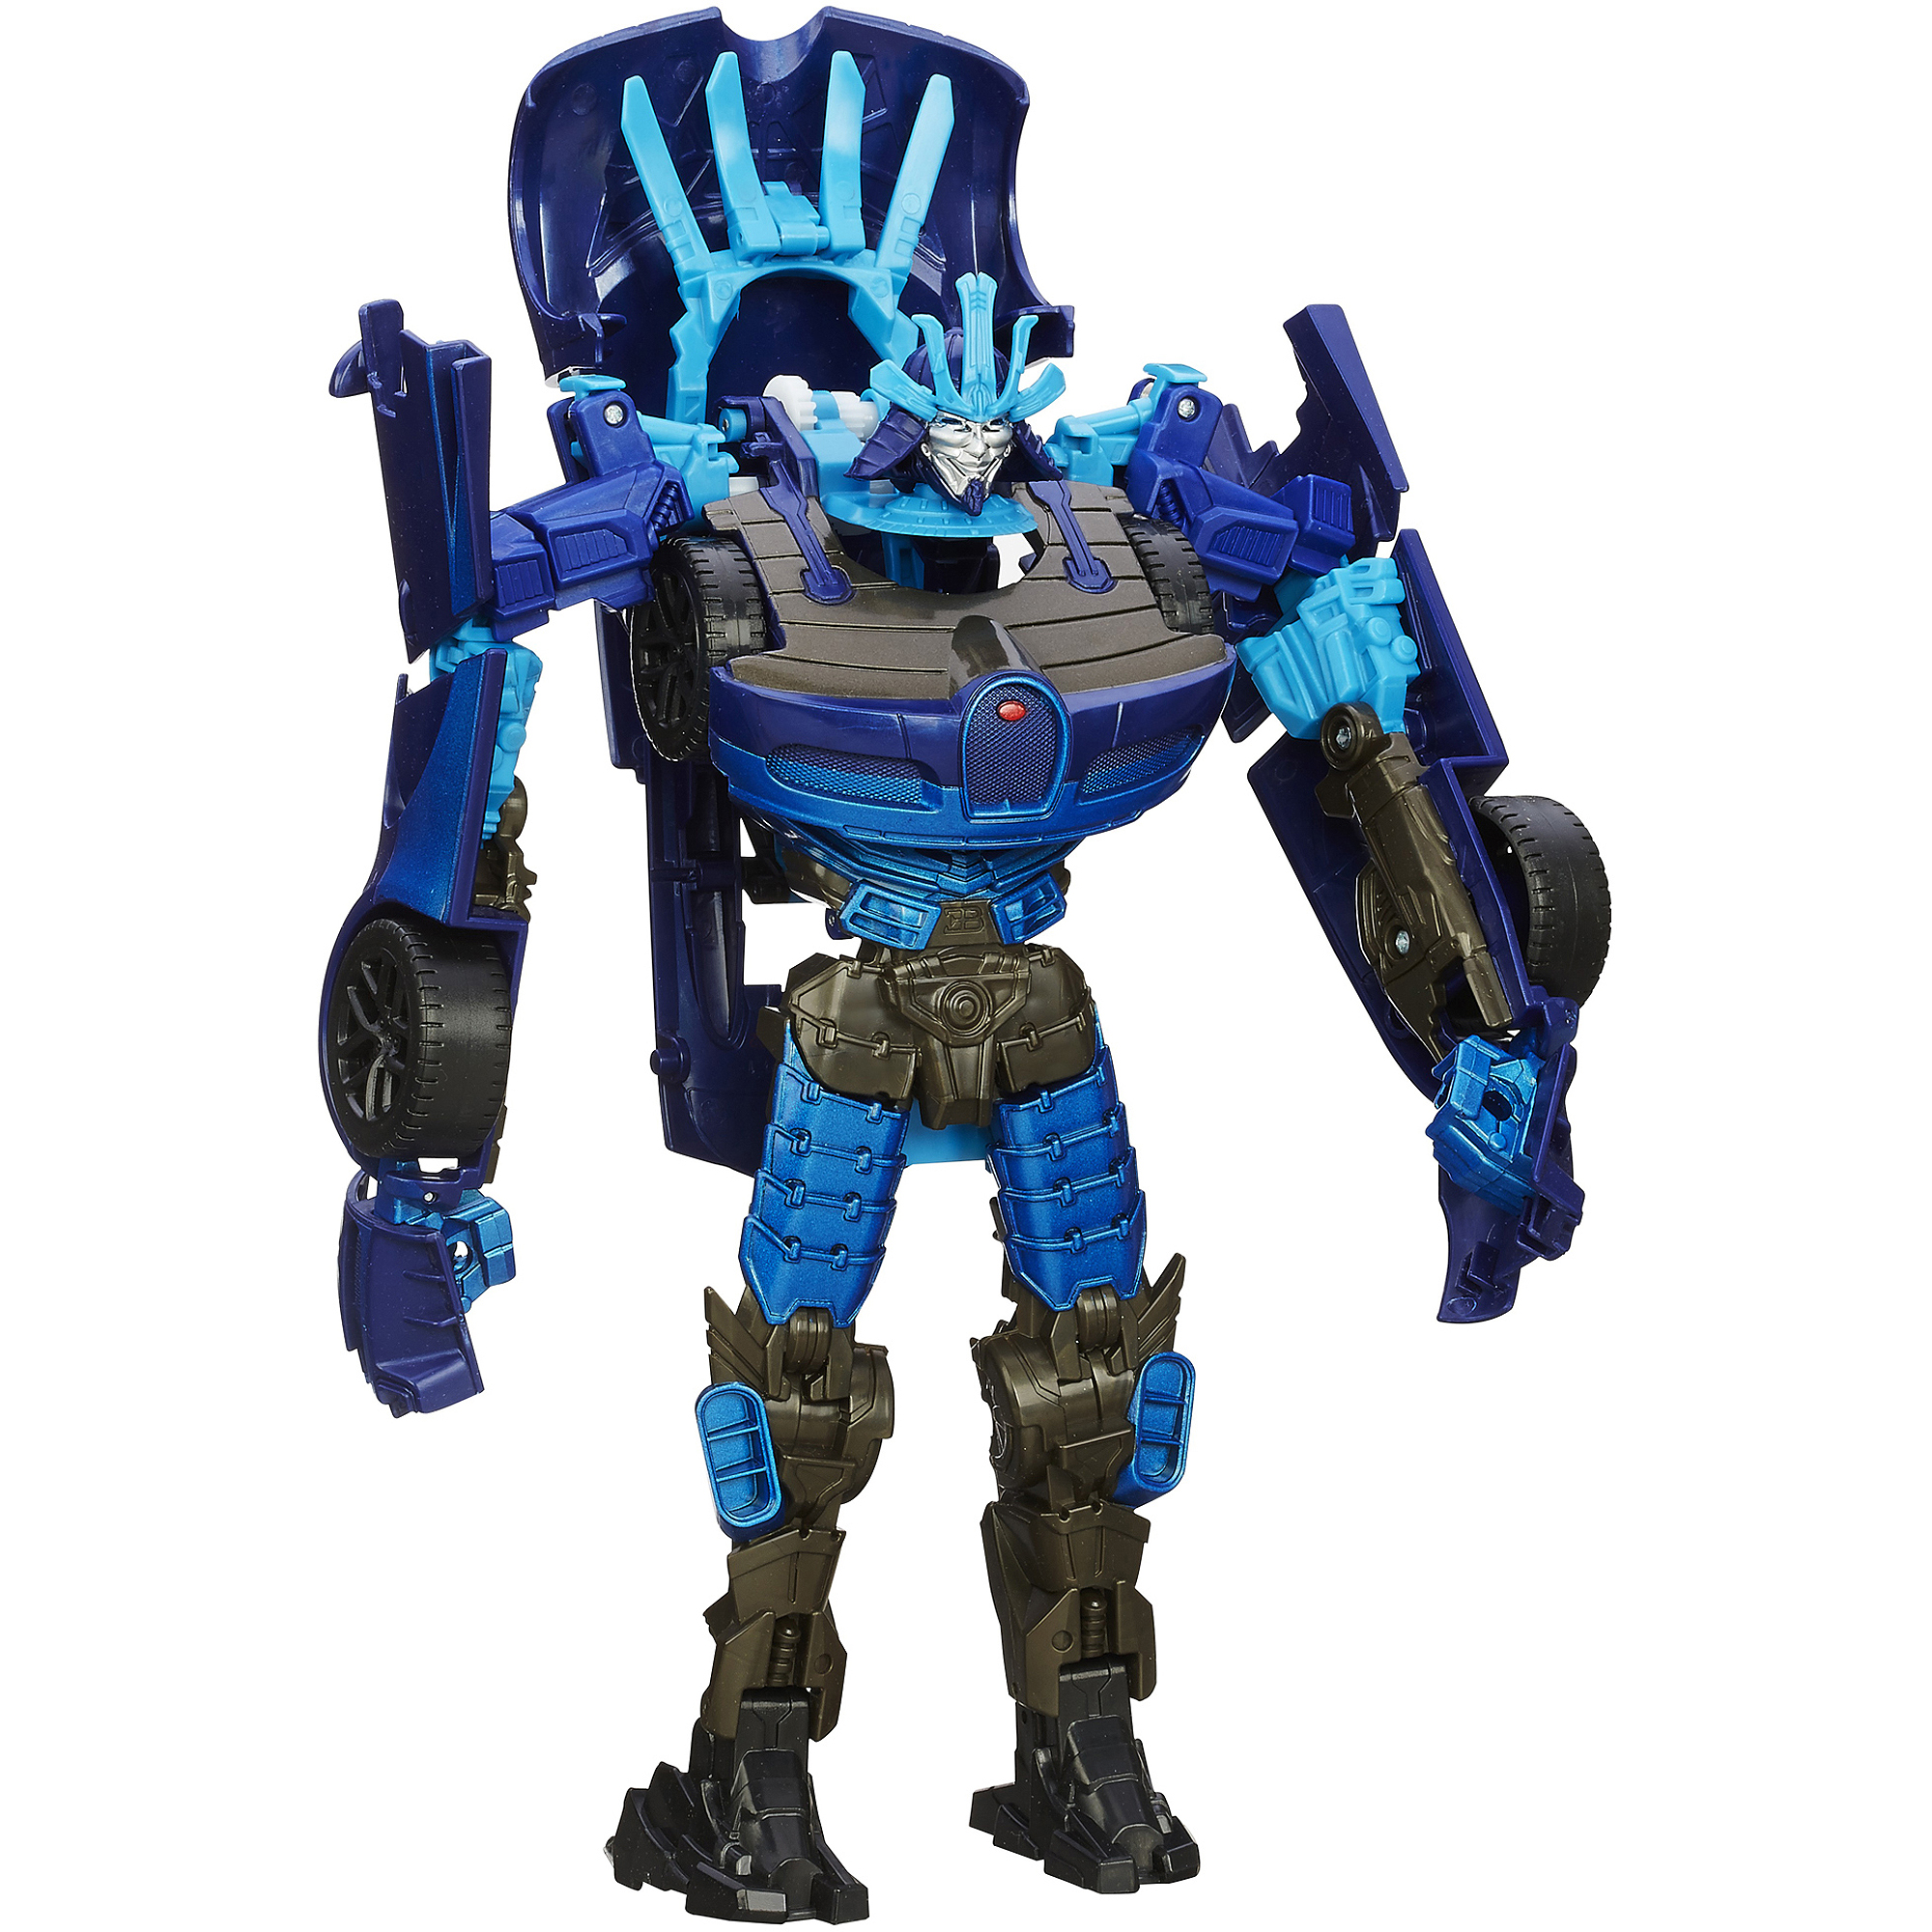 Transformers Age of Extinction Flip and Change Autobot Drift Figure